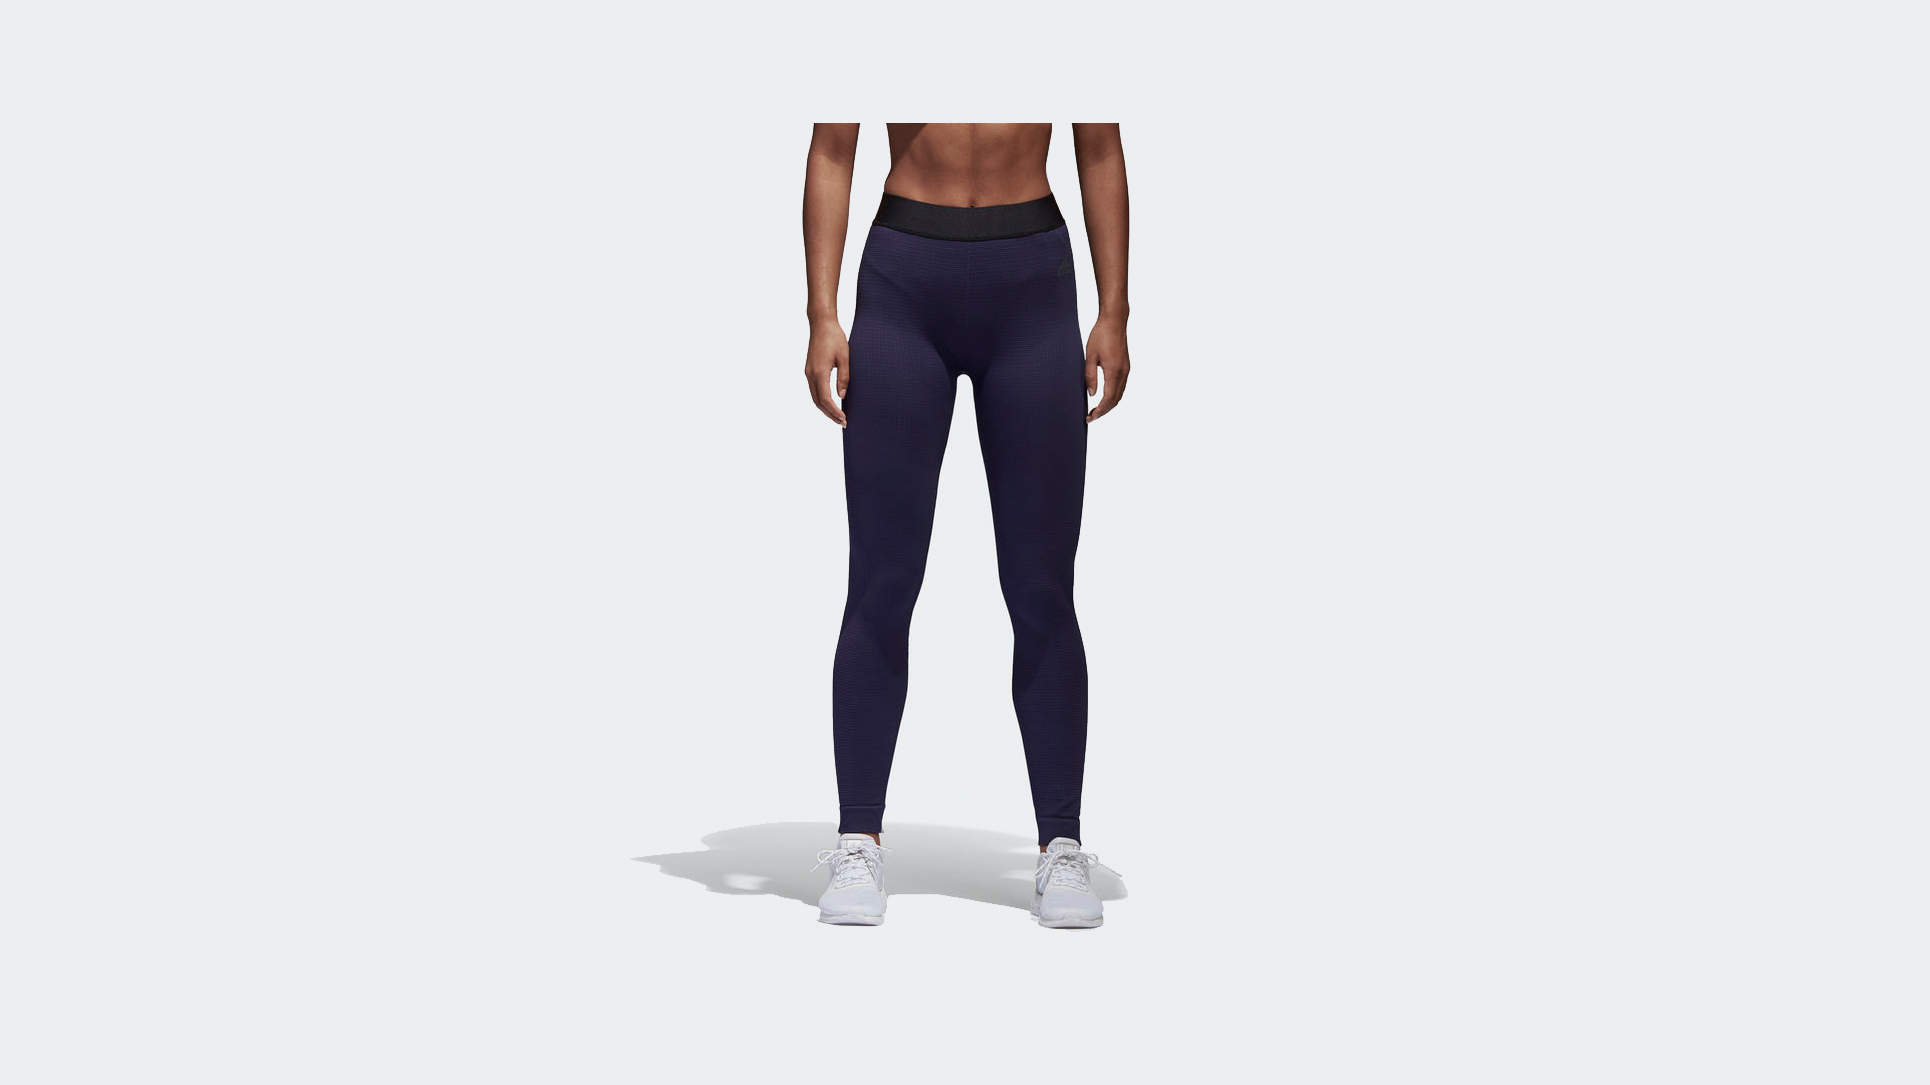 6ef9e962d1 I Tested 10 Pairs of Leggings and These Are the Ones That Barely ...